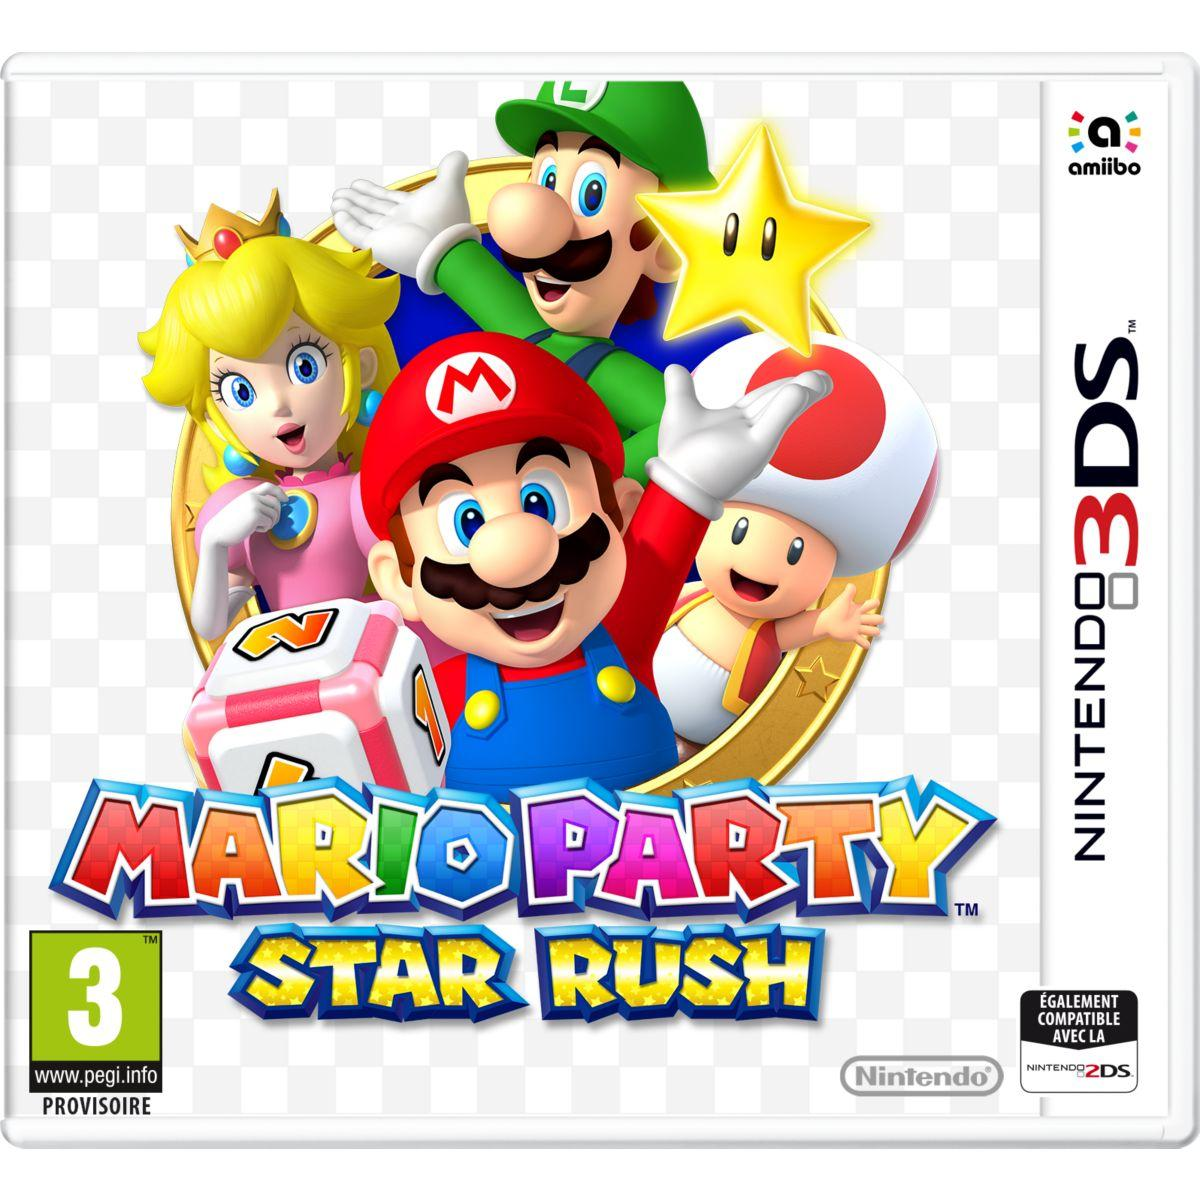 Jeu 3ds nintendo mario party star rush - 2% de remise immédiate avec le code : cool2 (photo)